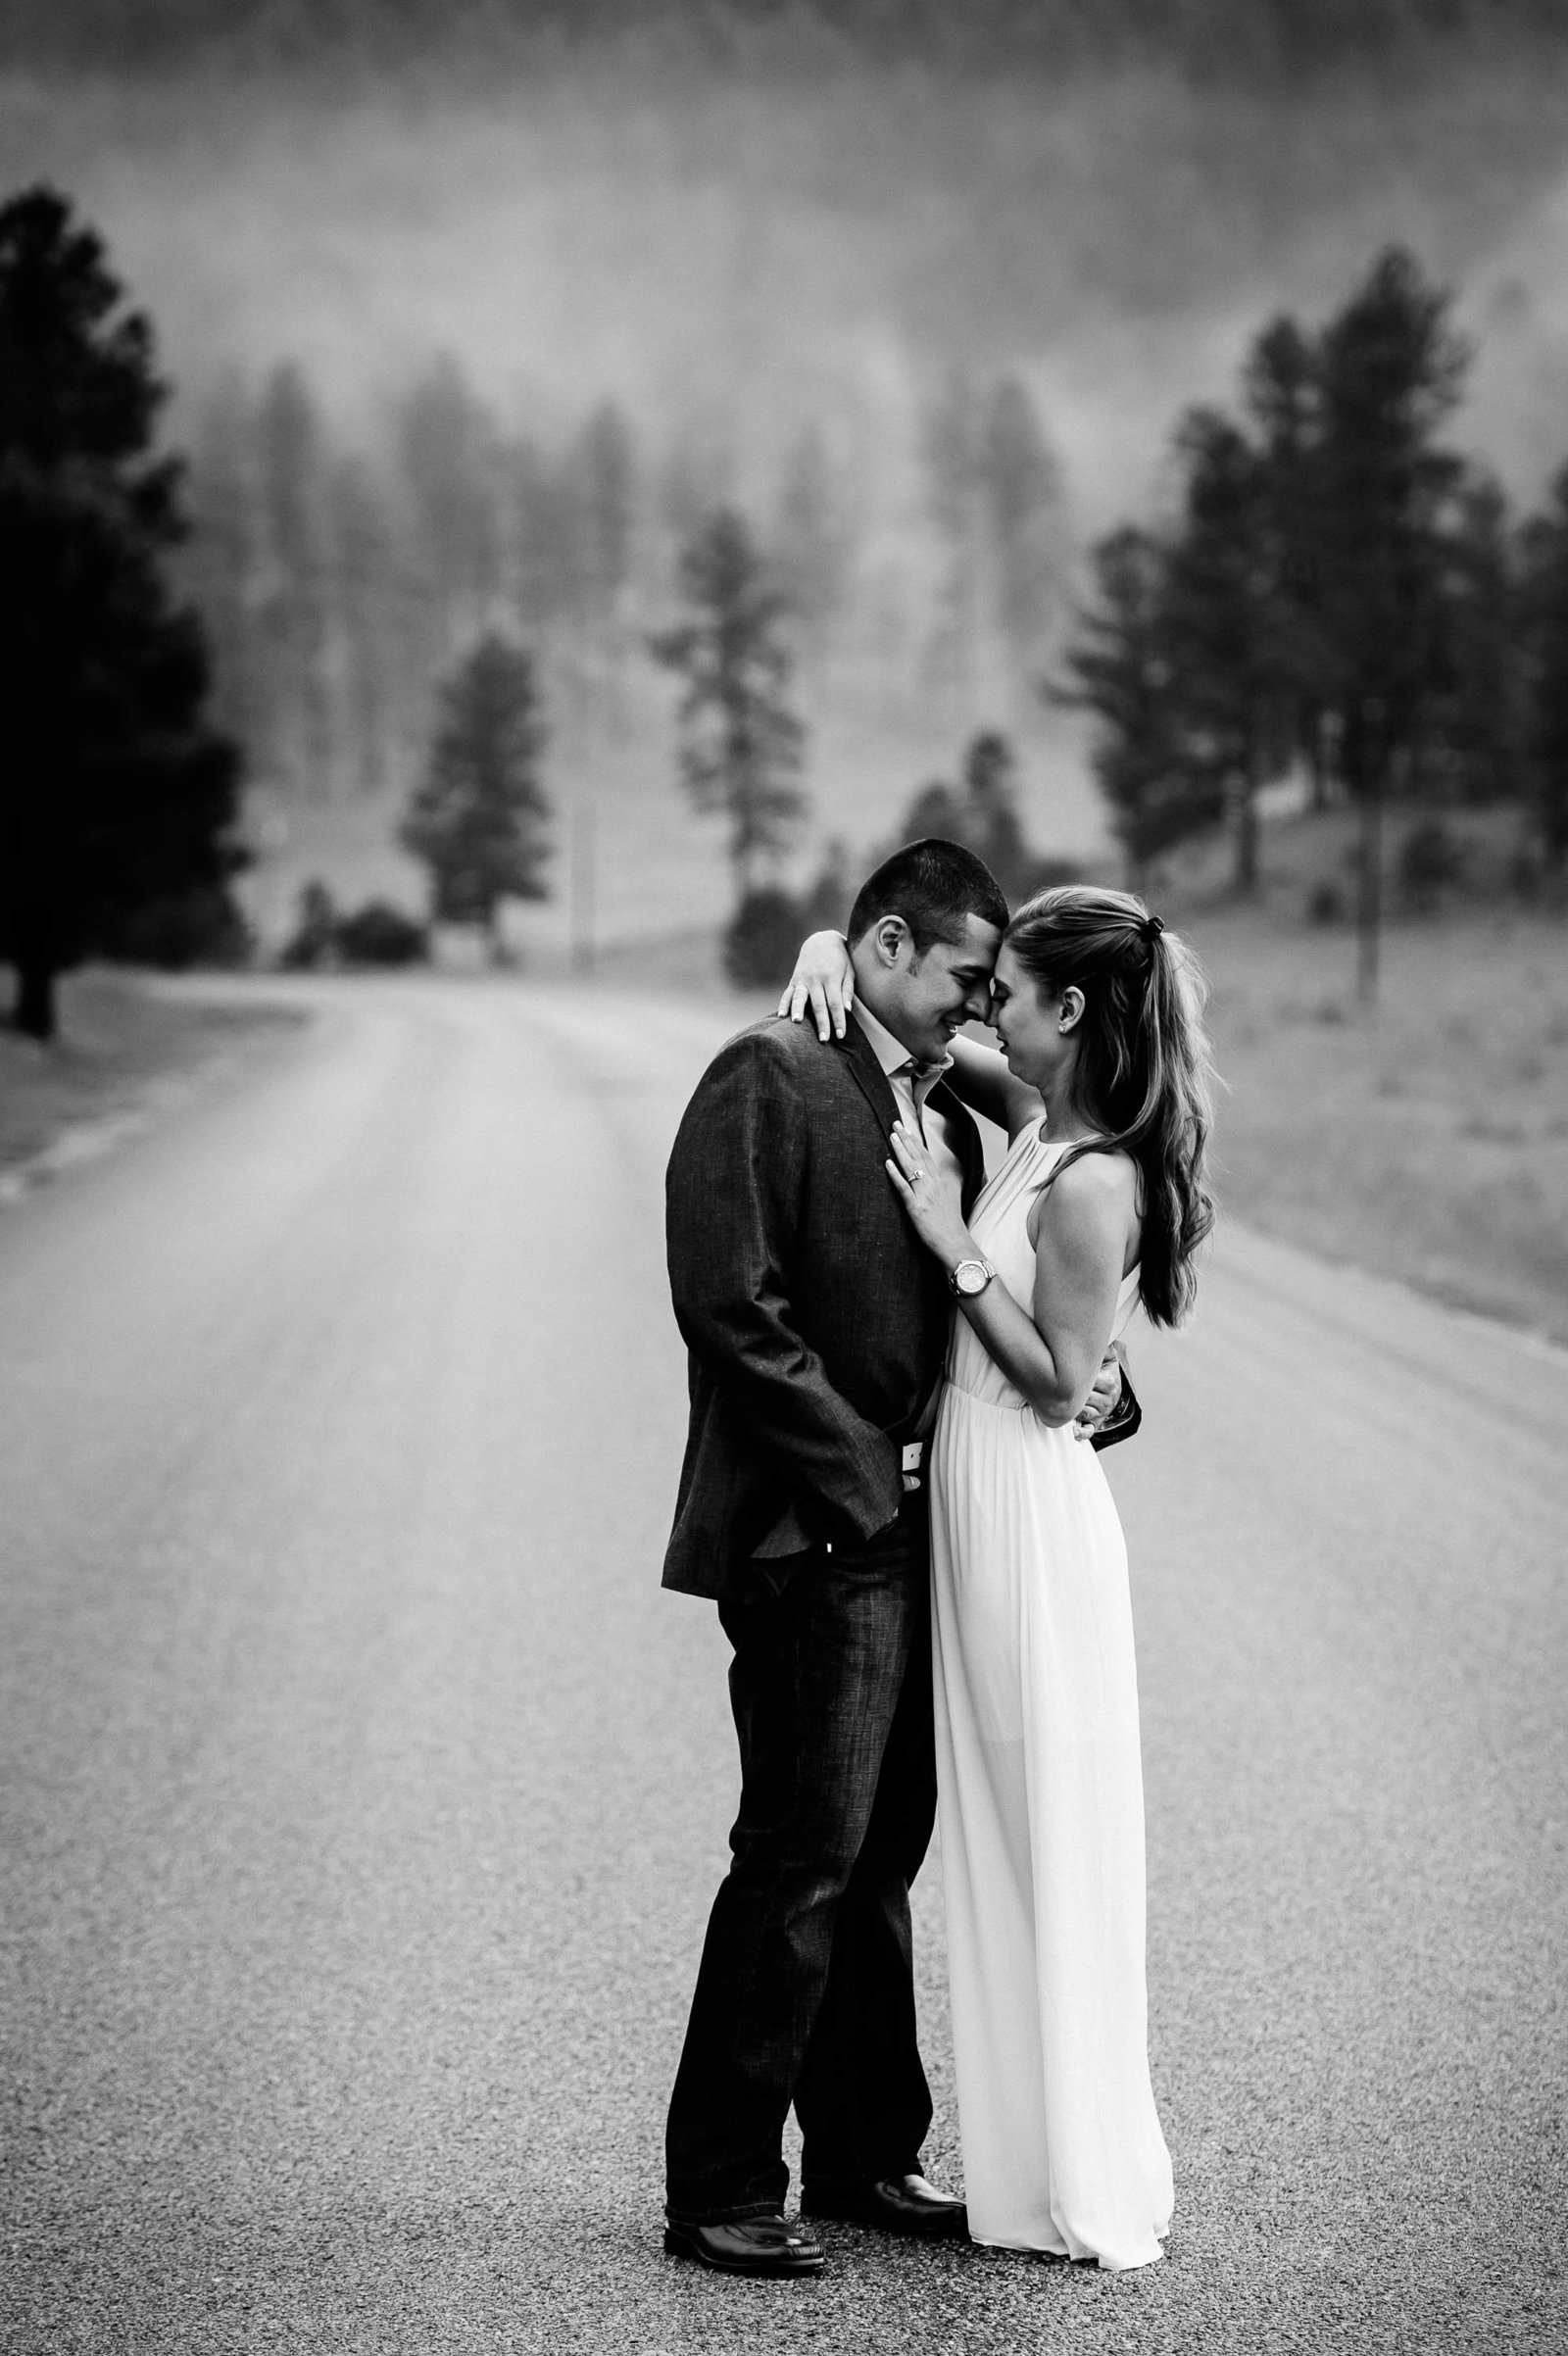 007-El-paso-wedding-photographer-RaRo_0097